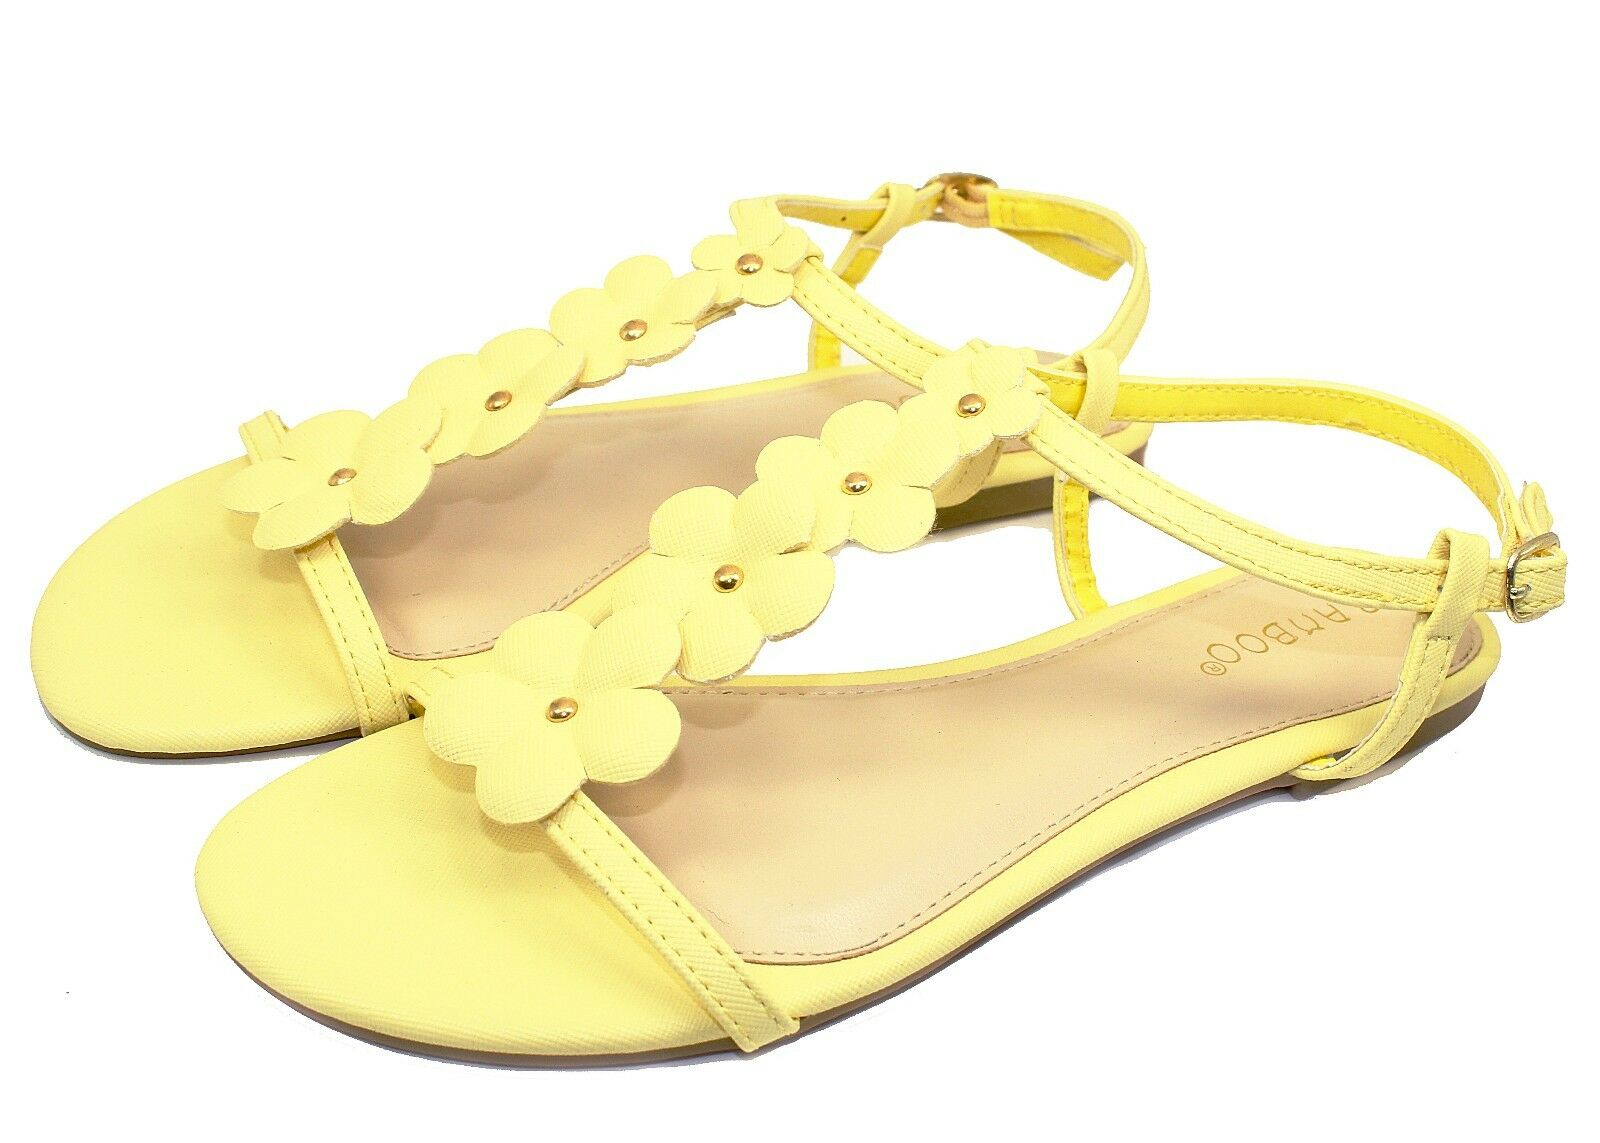 CALEB-10 New Flats Sandals Buckle Gladiator Yellow Party Beach Women Shoes Yellow Gladiator 7.5 ca5c39